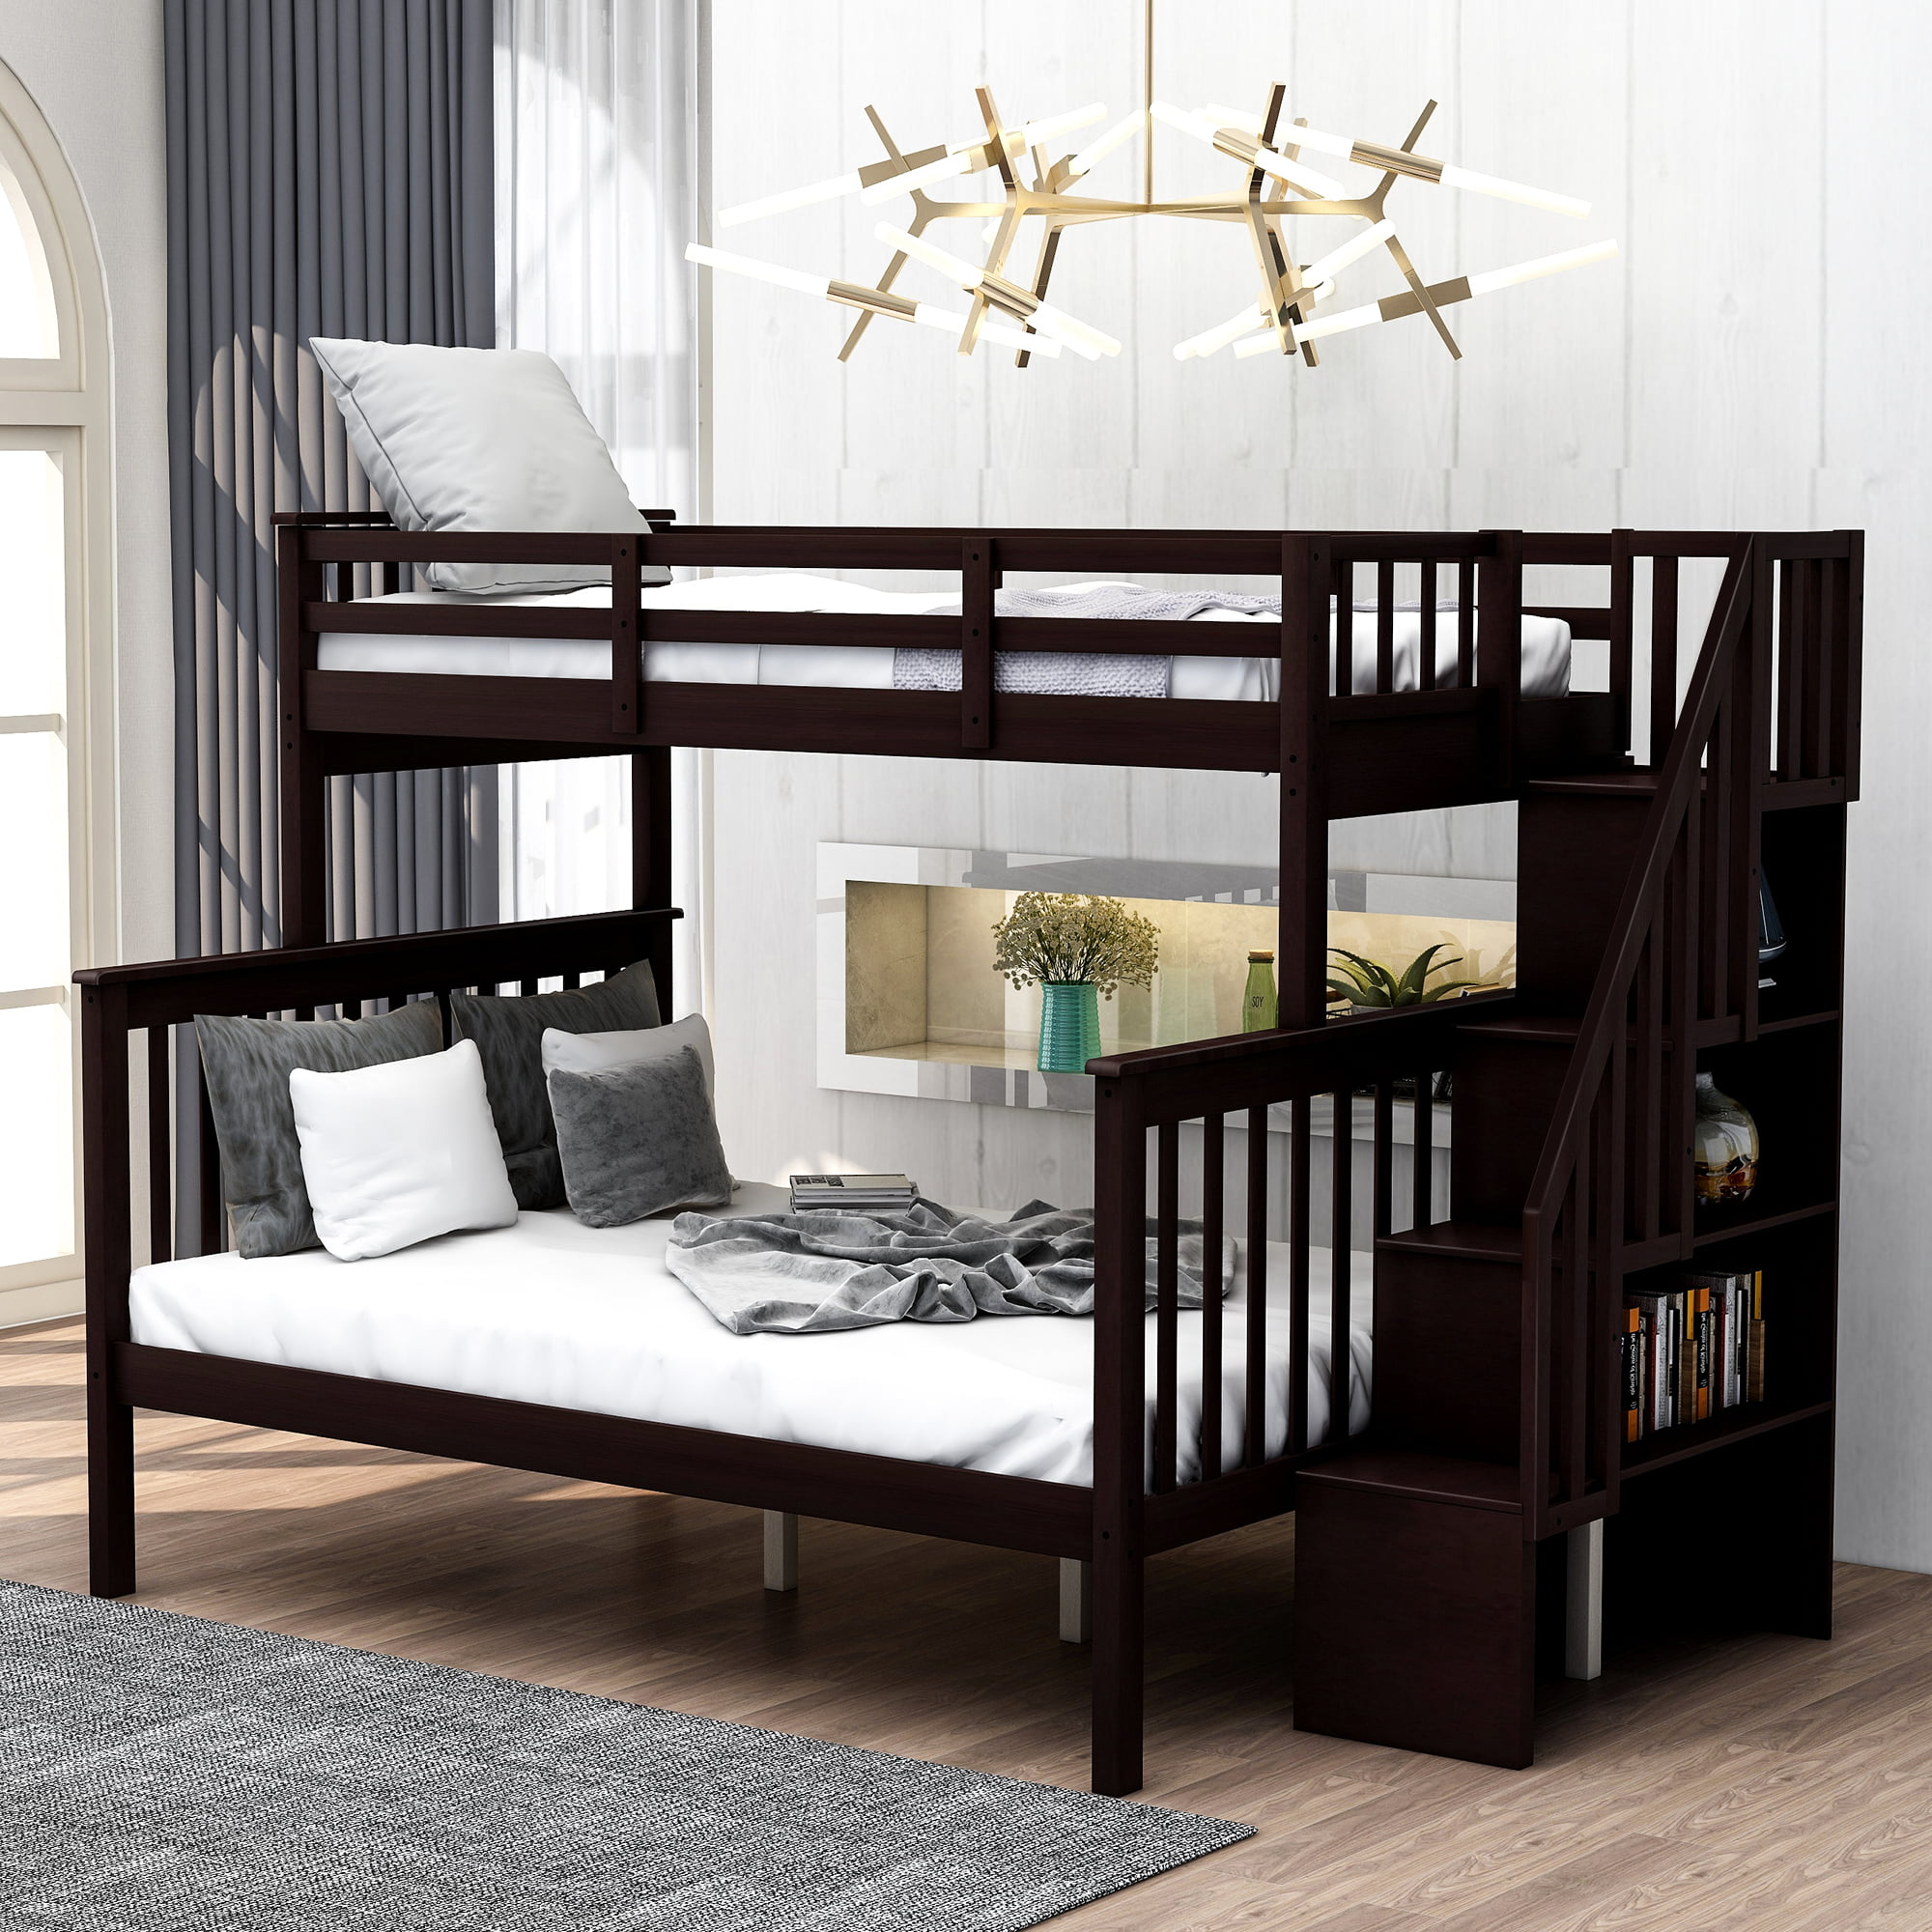 Bunk Bed for Kids, Twin Over Full Bunk Beds with Storage ...